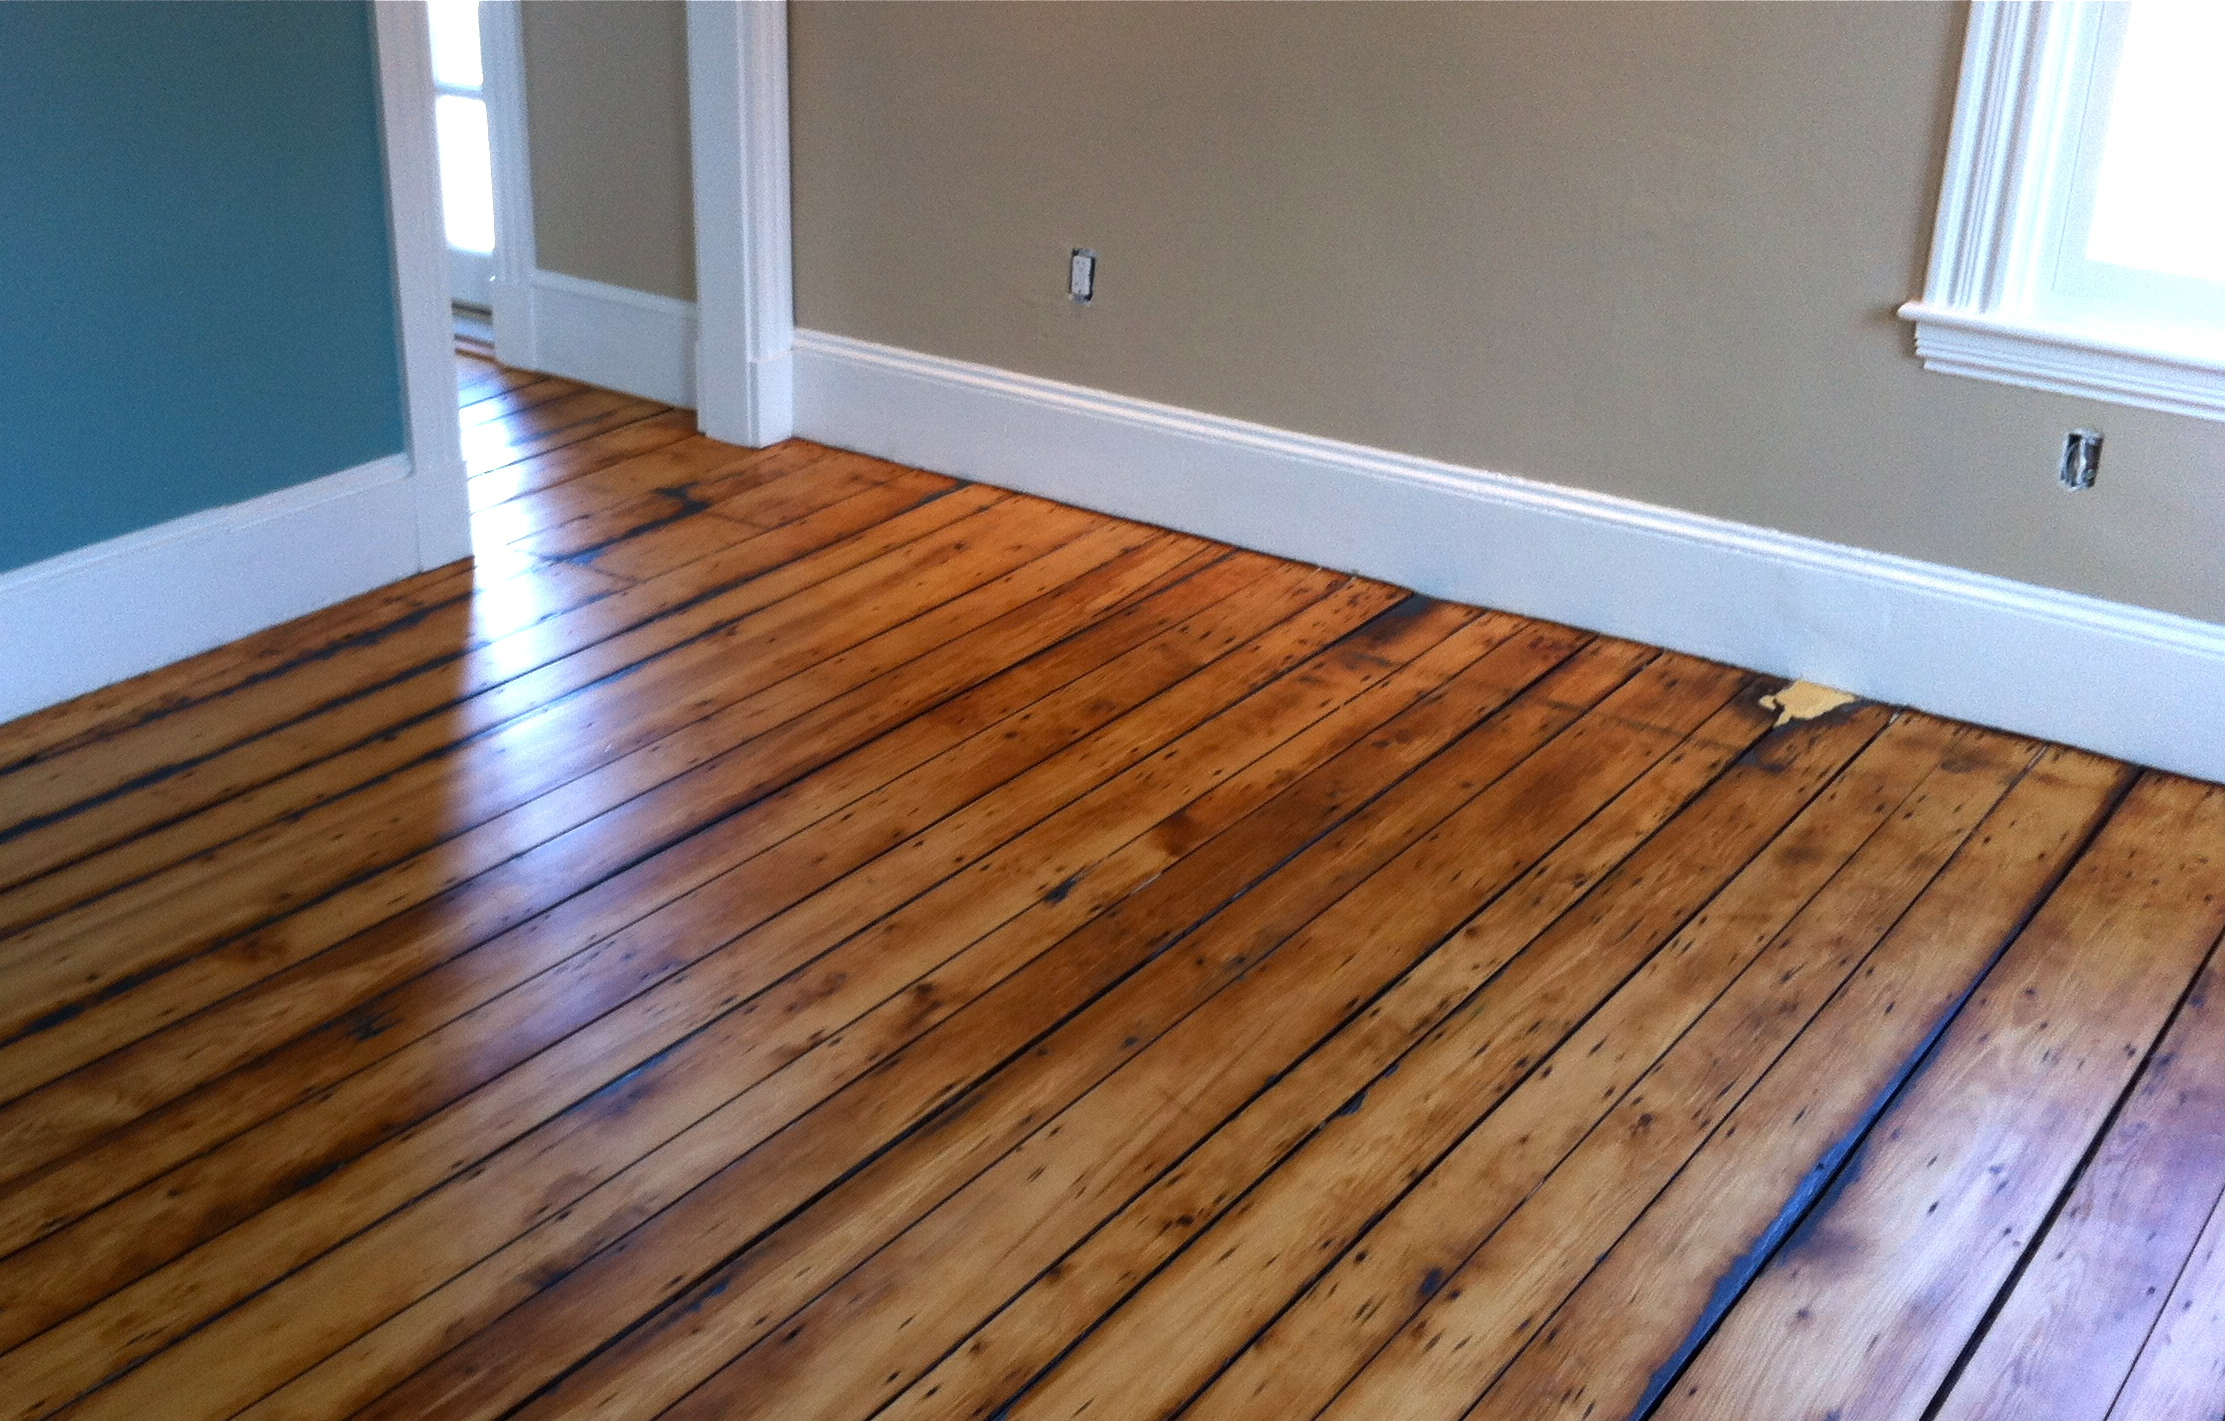 Shiny and new restored hardwood floors on Cape Cod.